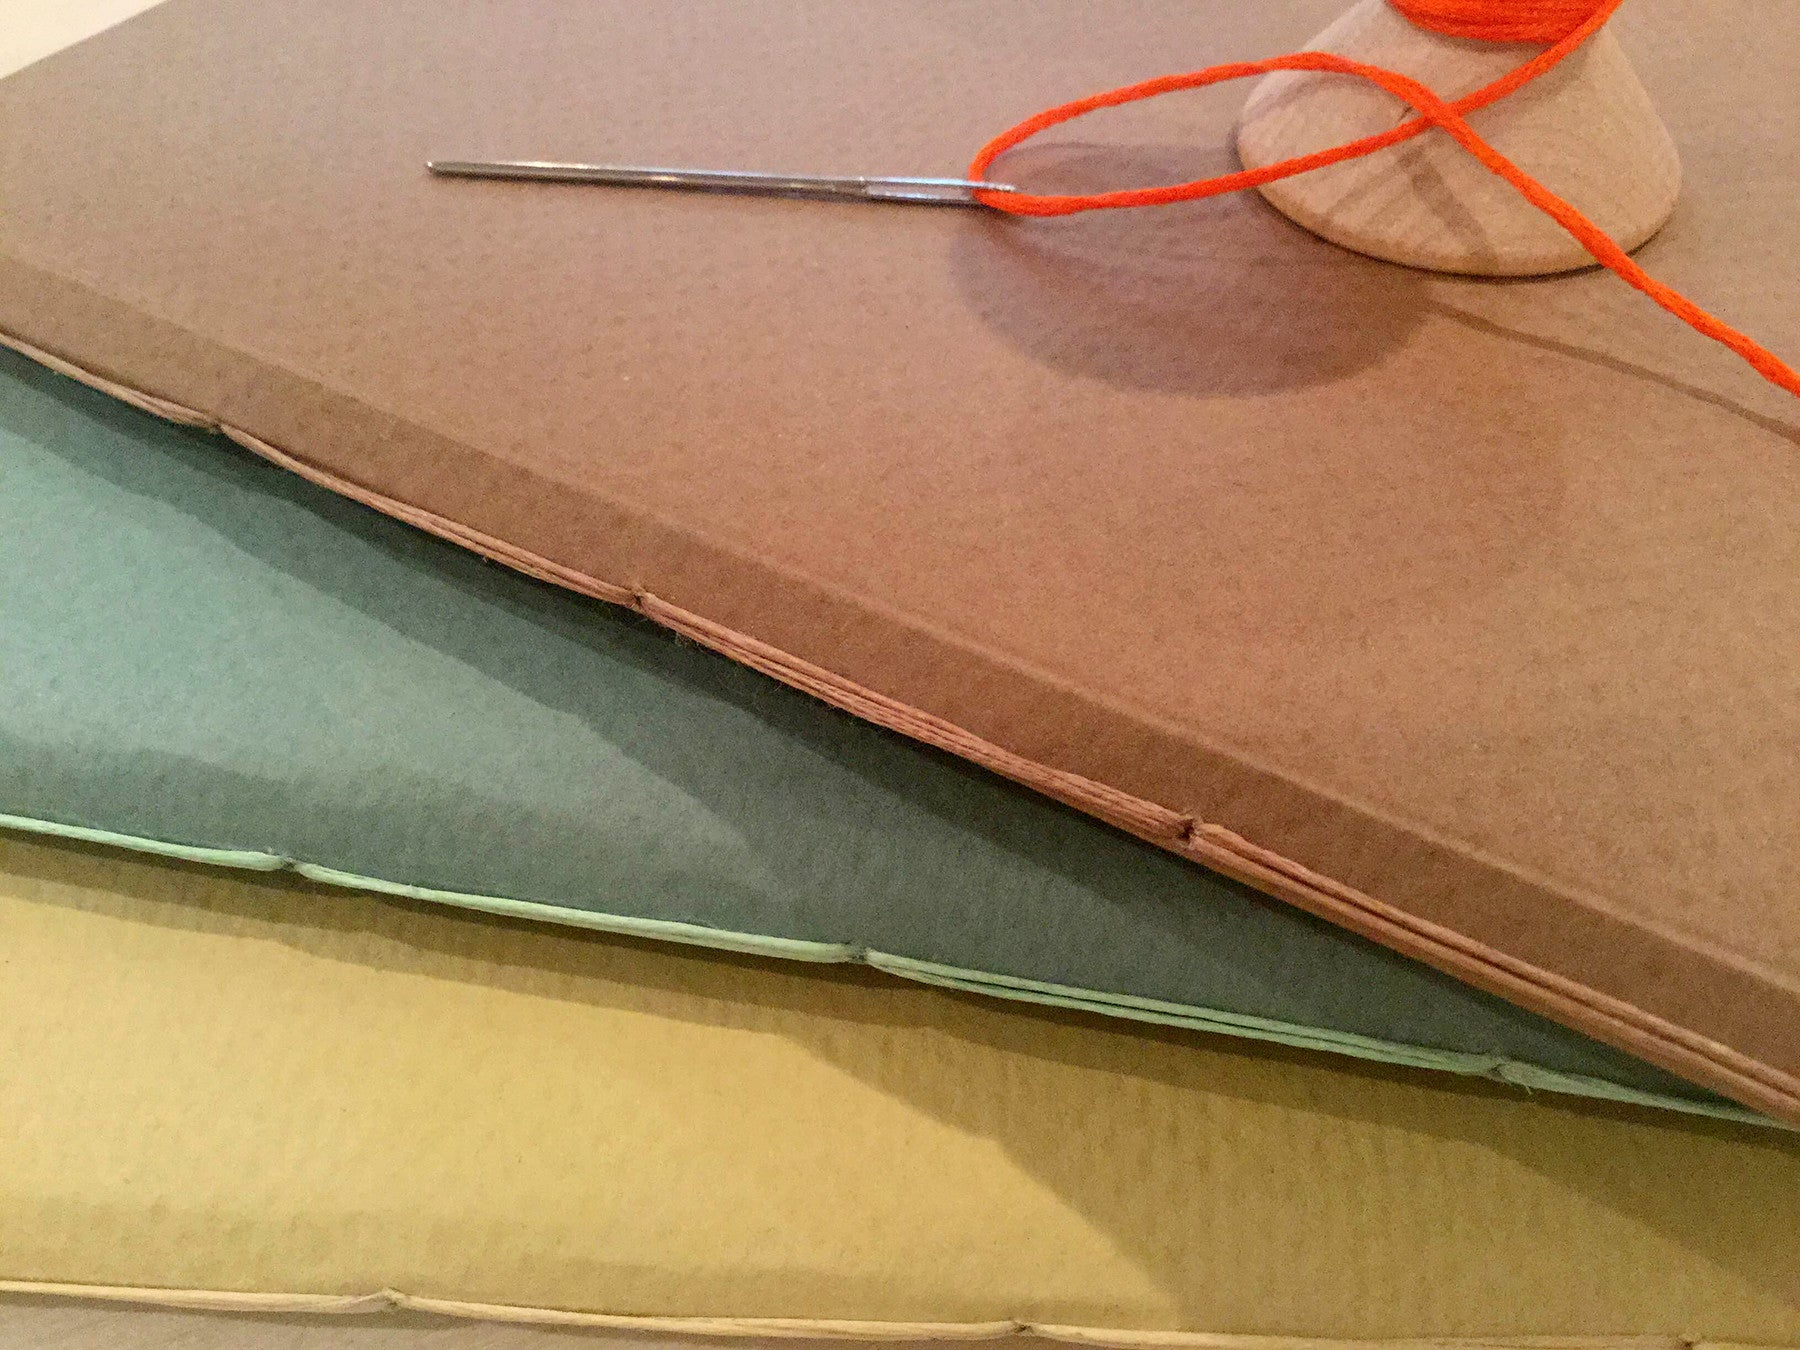 BOOKBINDING: Pamphlet Stitch